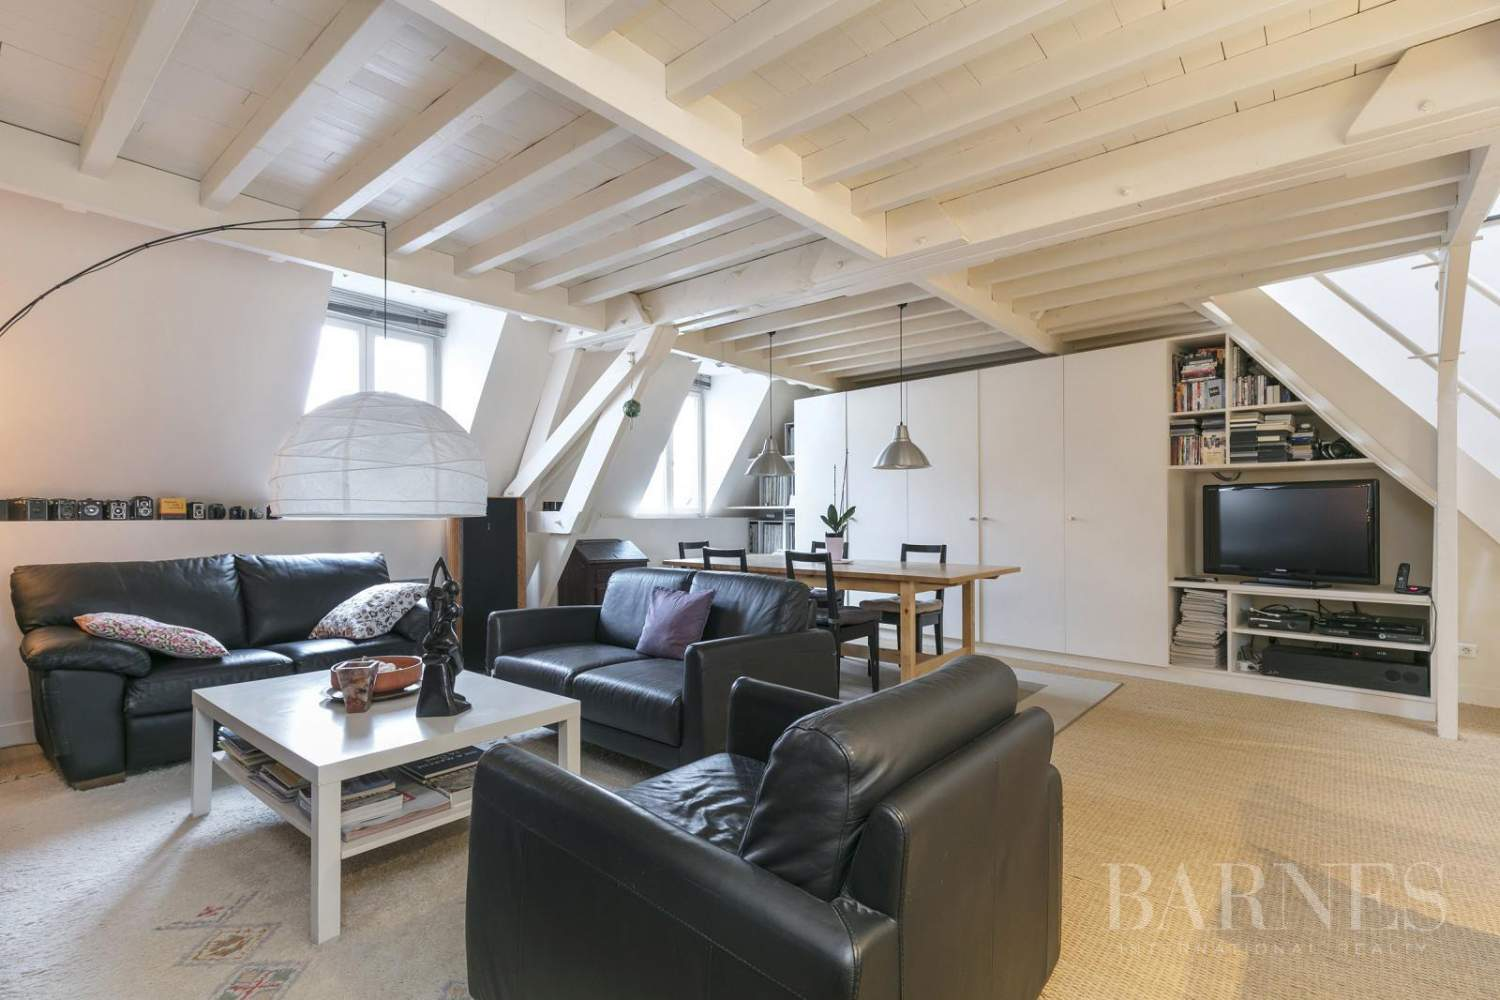 FOR SALE - SAINT GERMAIN EN LAYE - 2 MIN FROM THE RER A LINE - 3-BEDROOM APARTMENT - SHOPS AND SCHOOLS picture 3